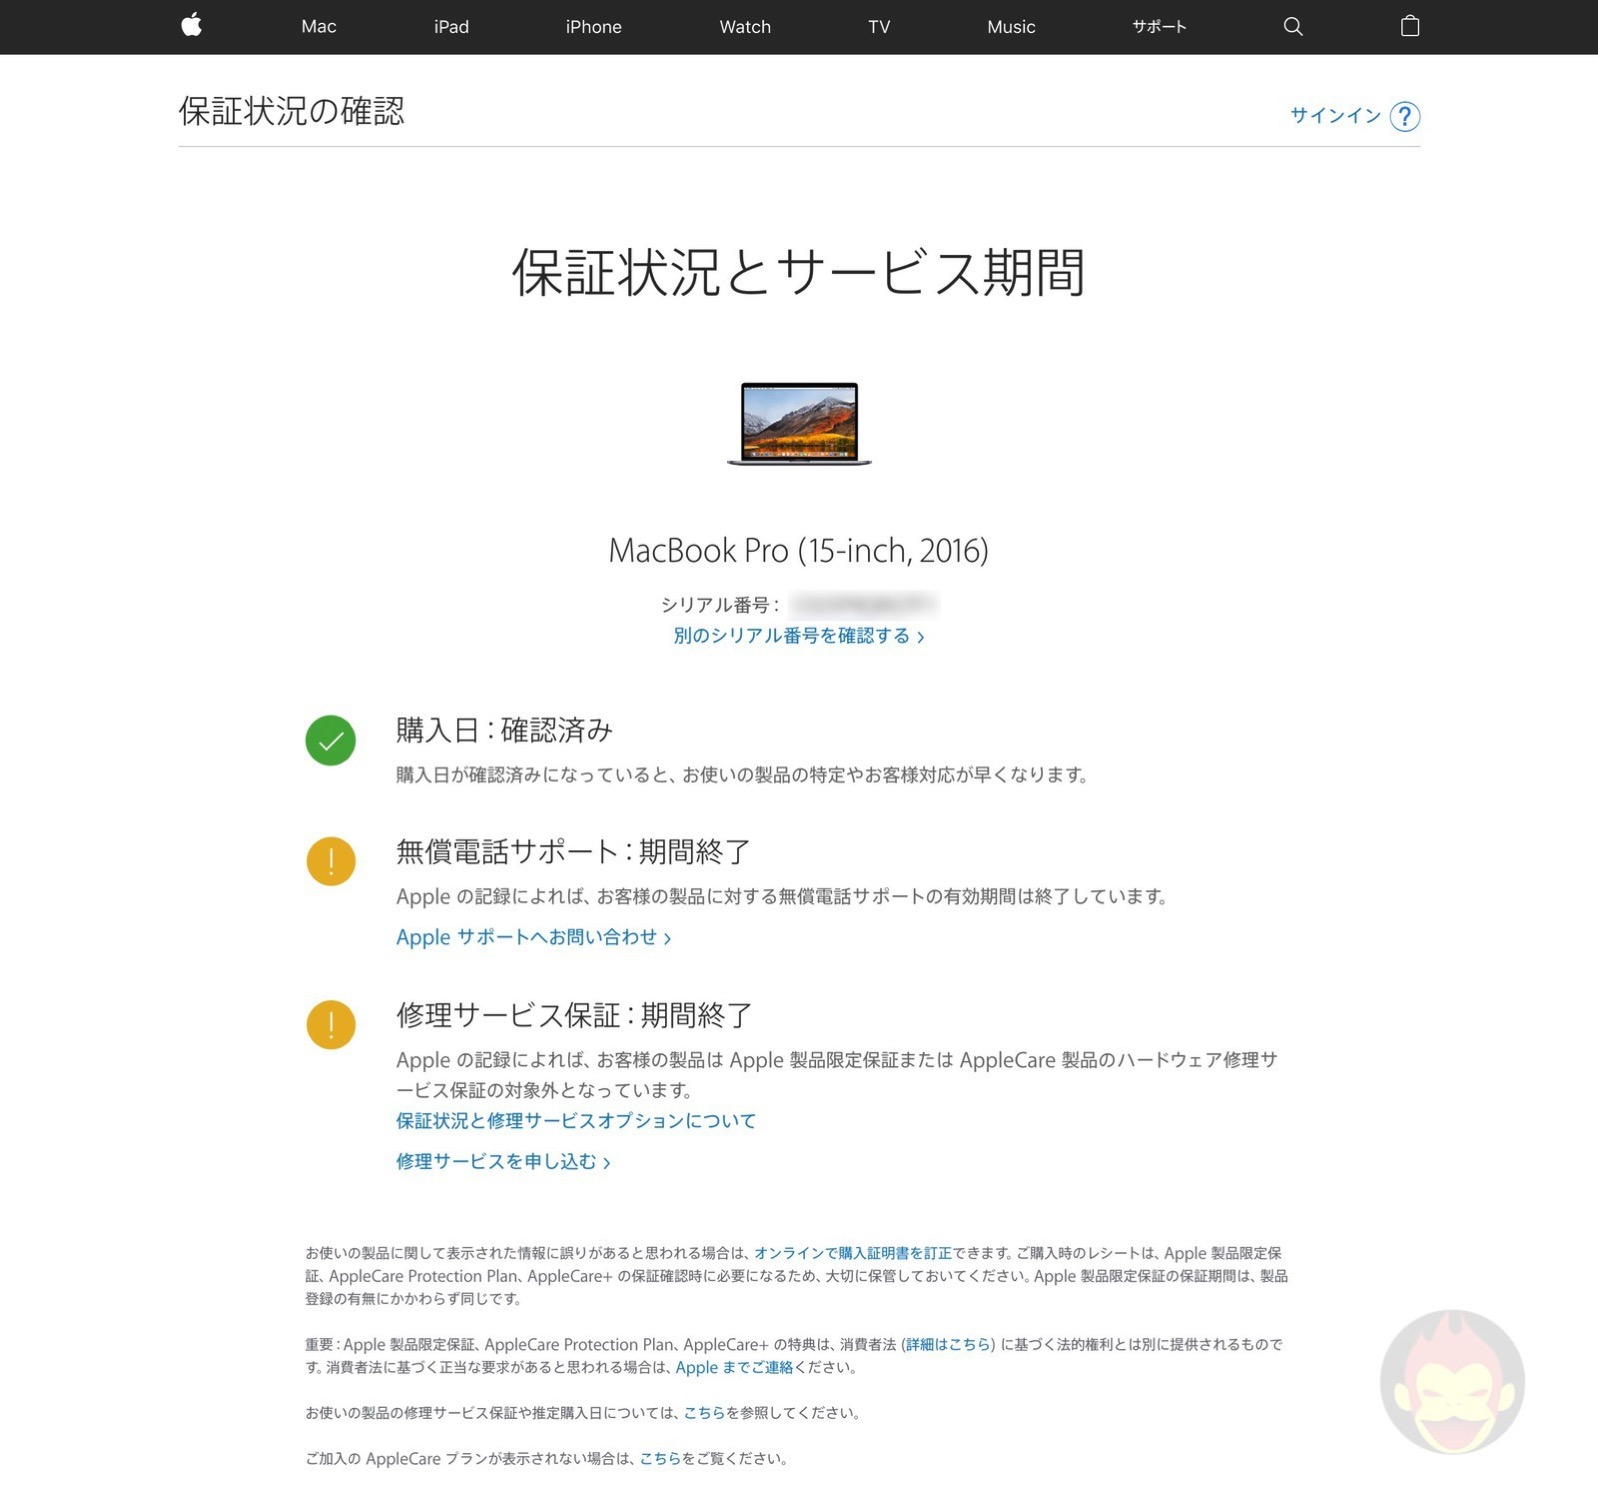 Mac-How-to-Check-Coverage-05.jpg